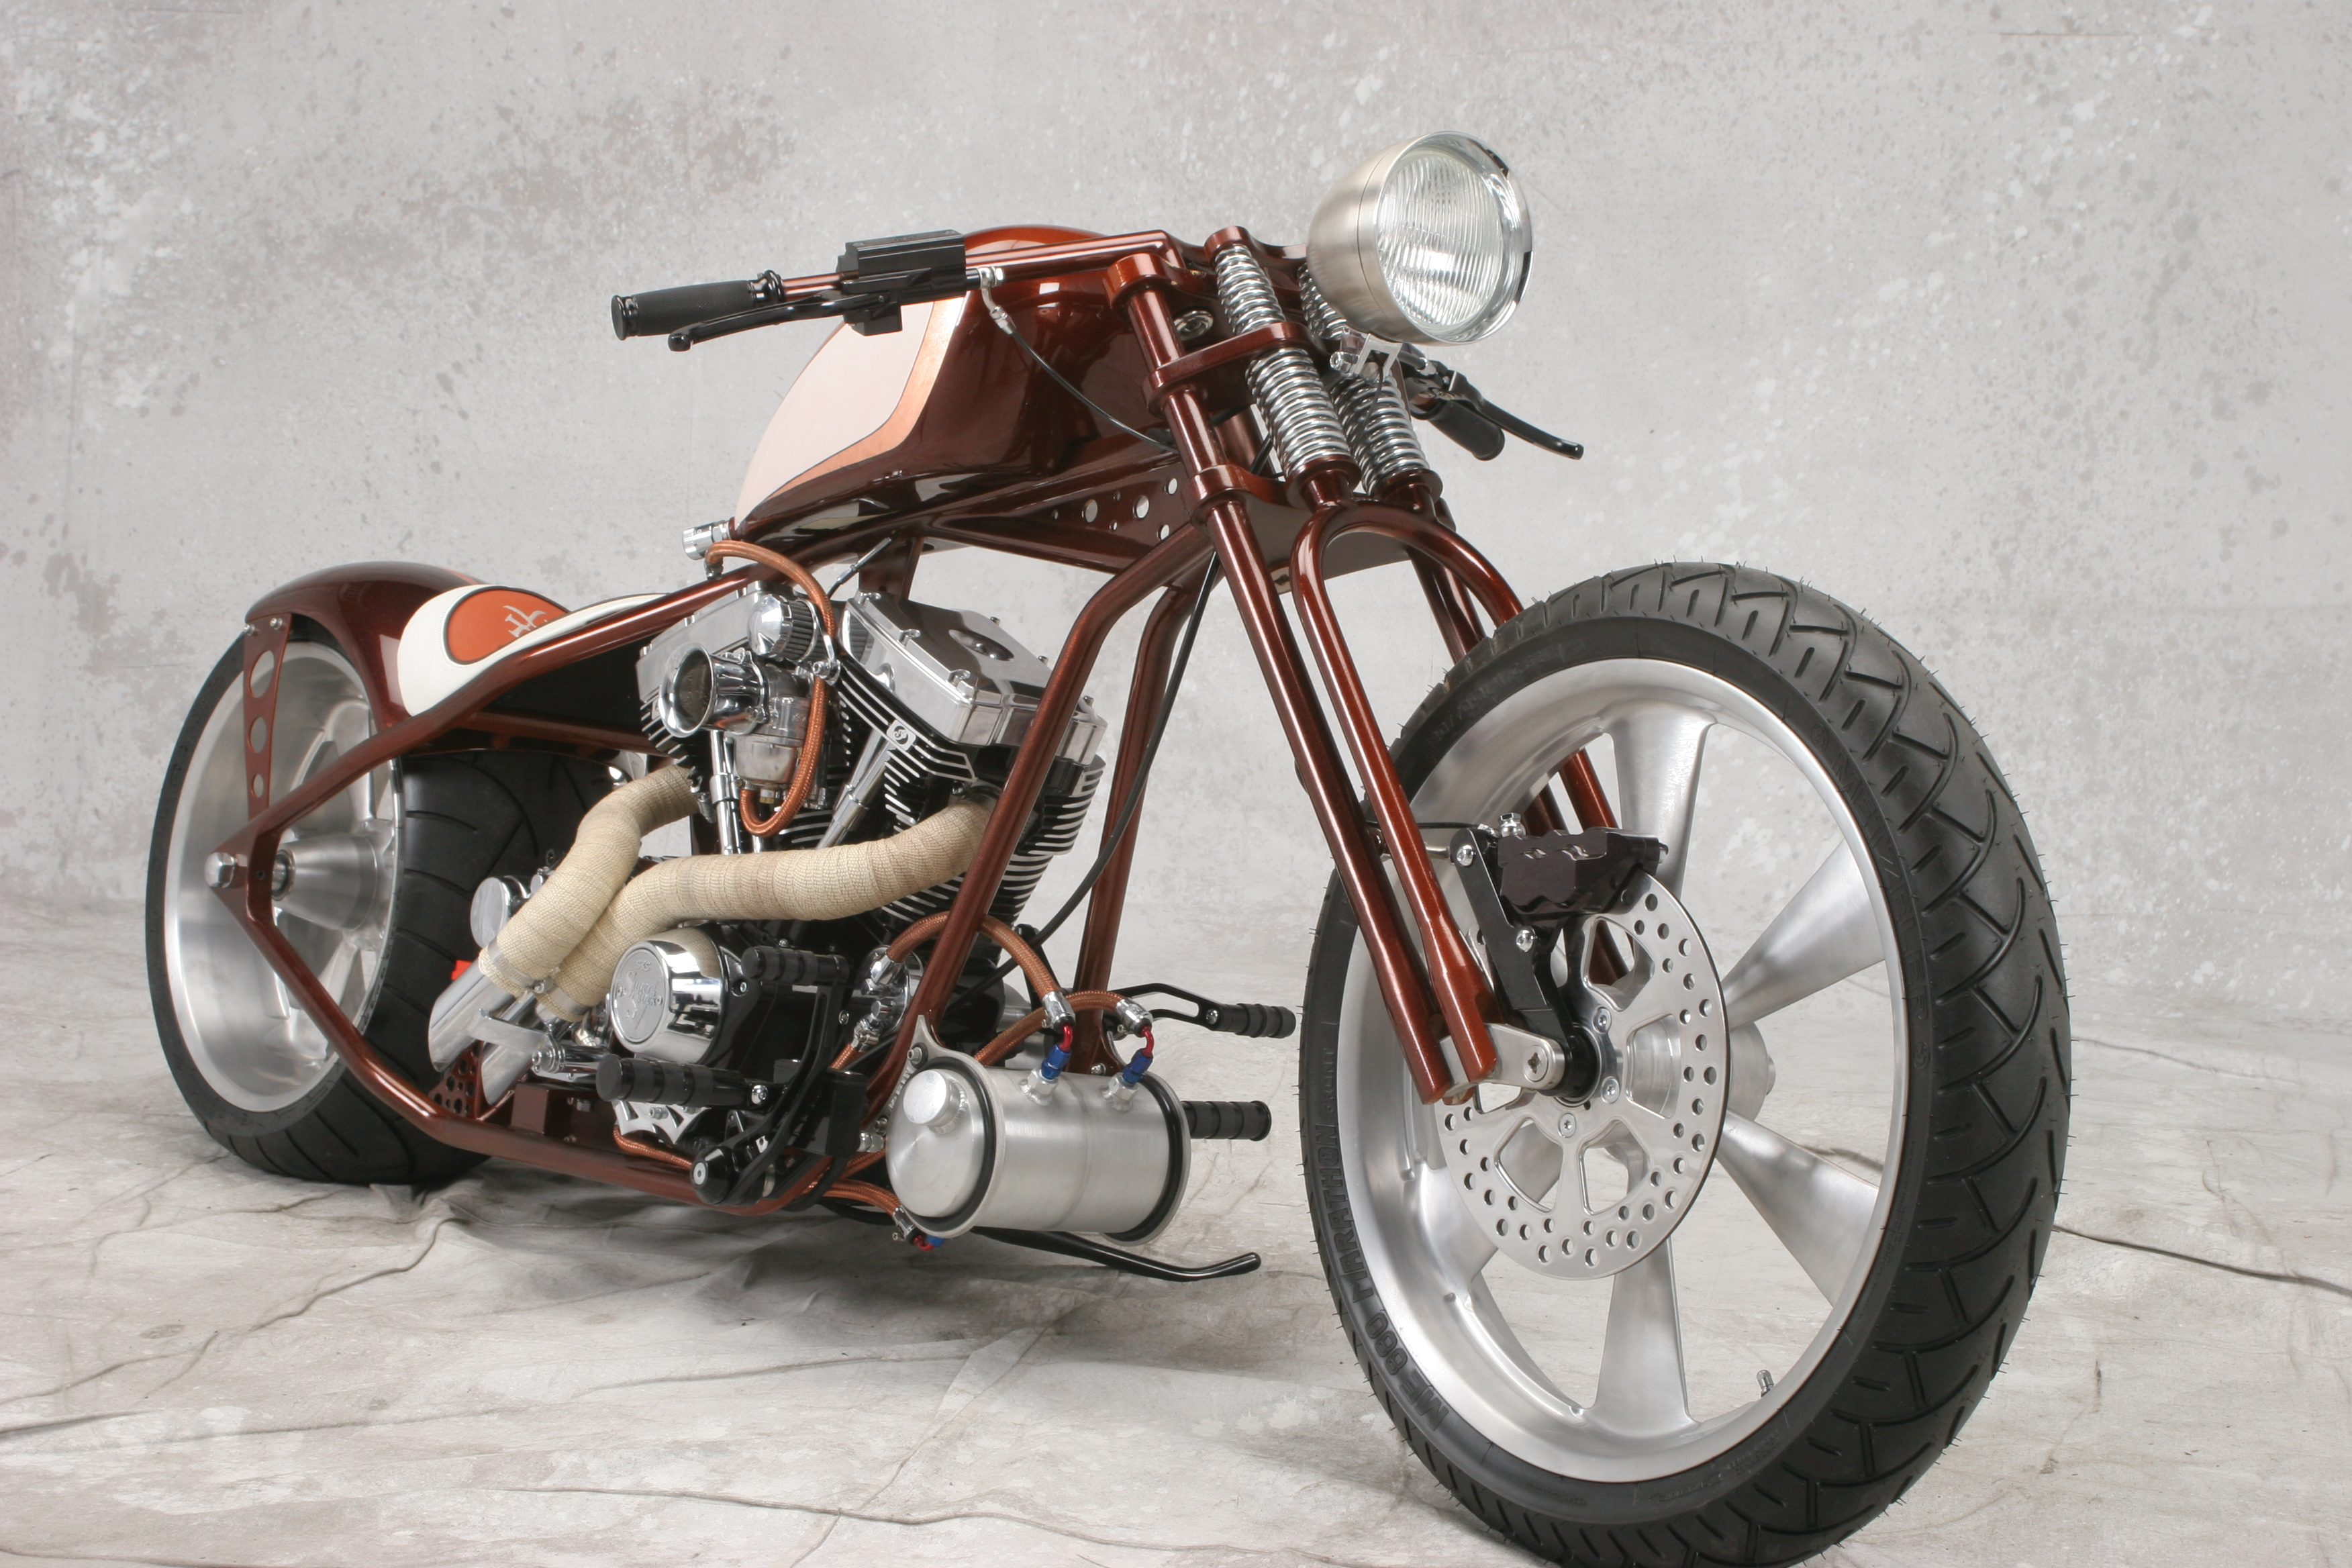 exotic motorcycles lucille customs cars fast amd guilty speed 2006 choppers announces participation boats stunning festival sturgis prweb